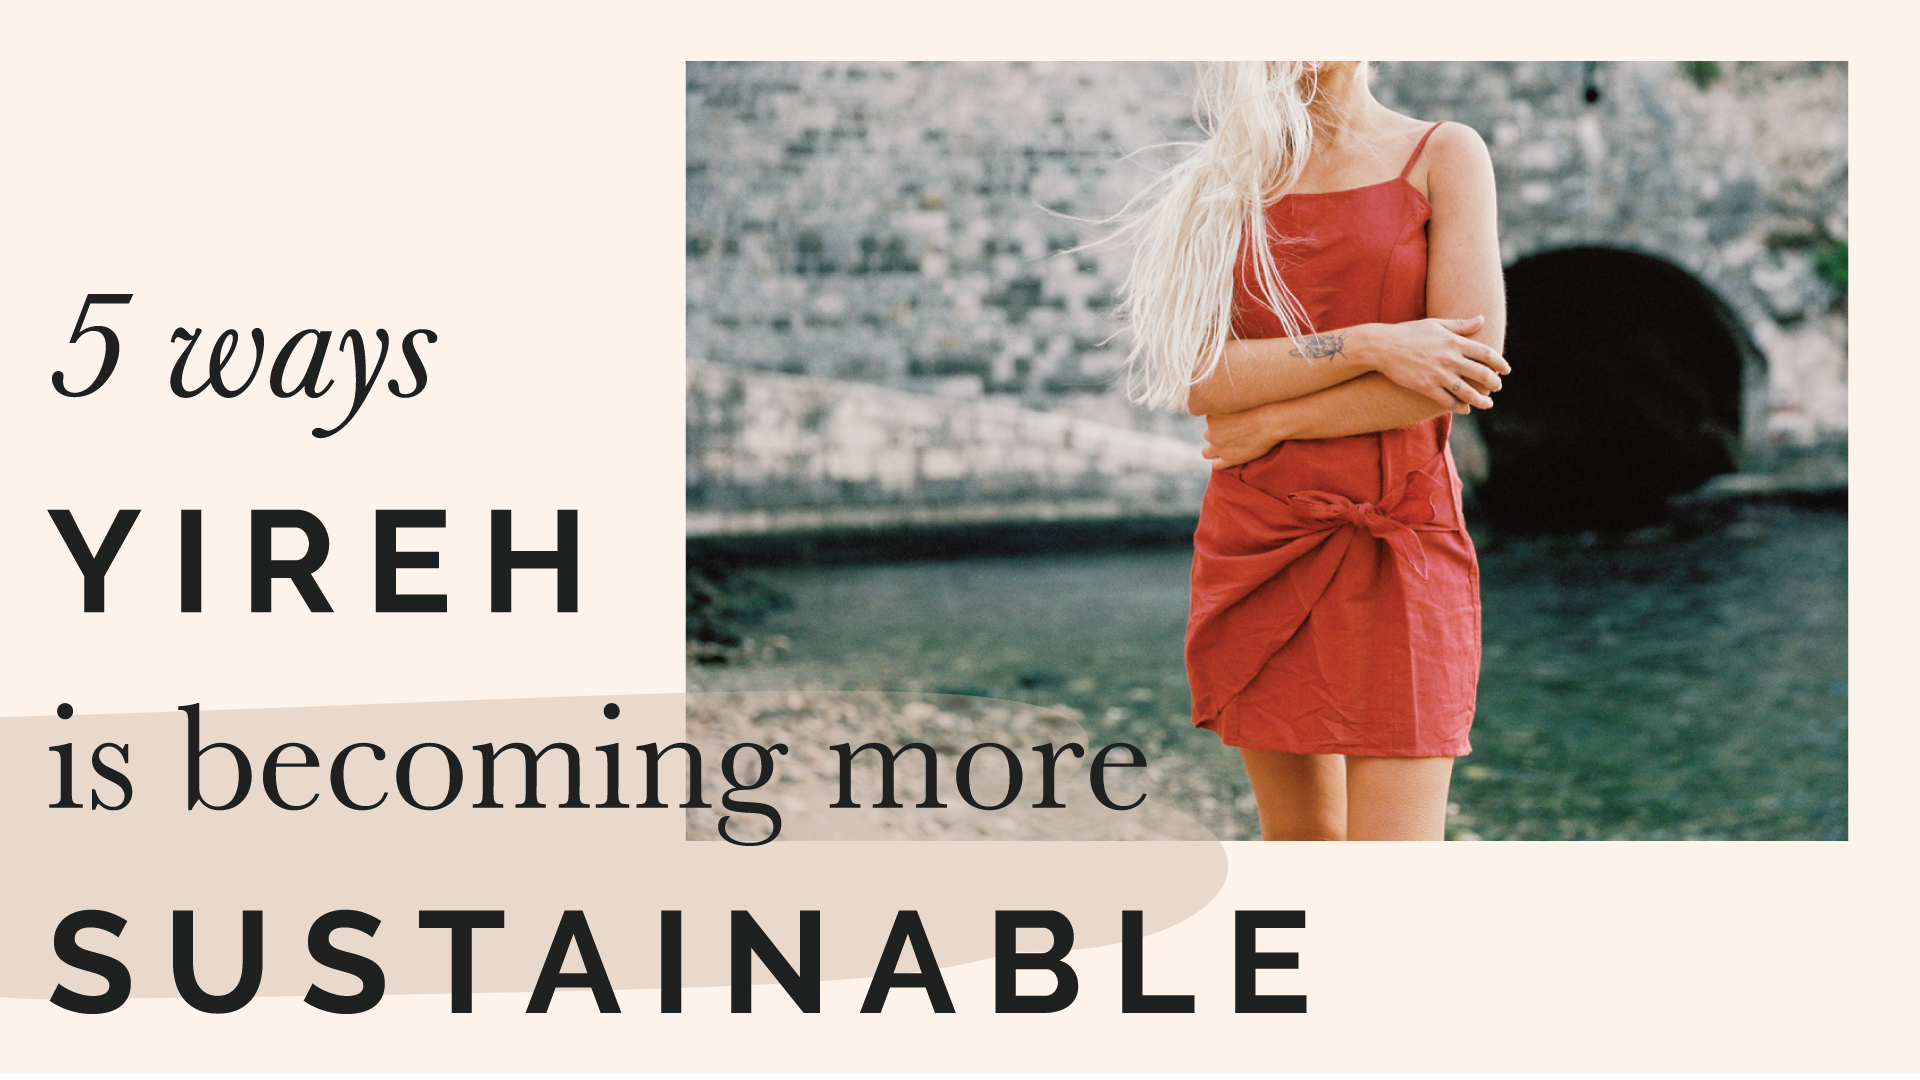 5 Ways YIREH is Becoming More Sustainable